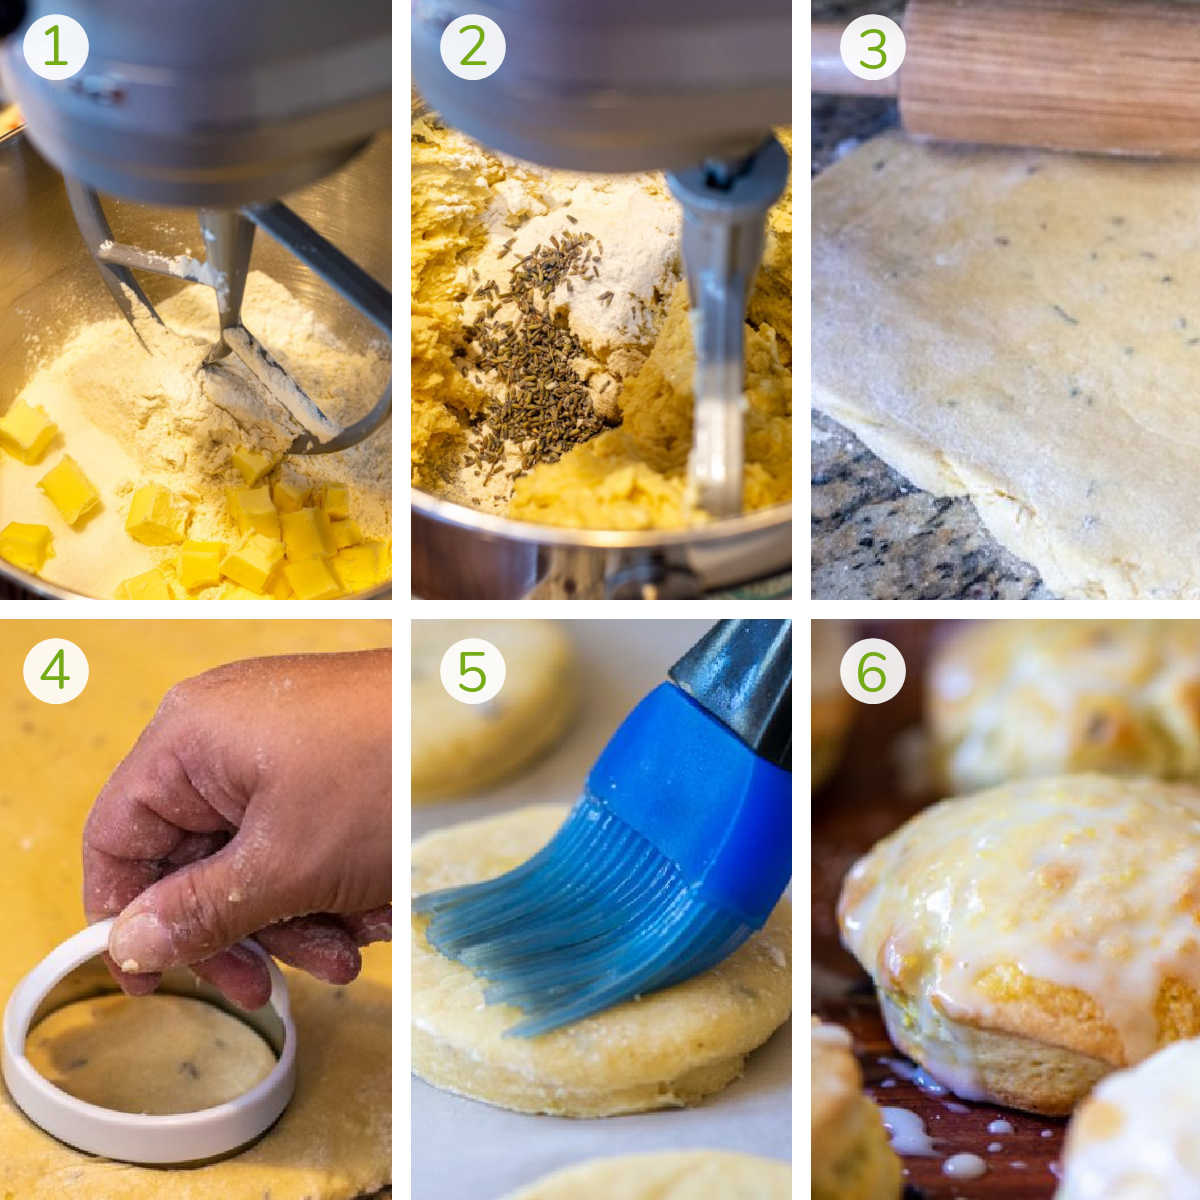 six photos showing how to make the lemon lavender scones including mixing, rolling, cutting, brushing with butter and baking.